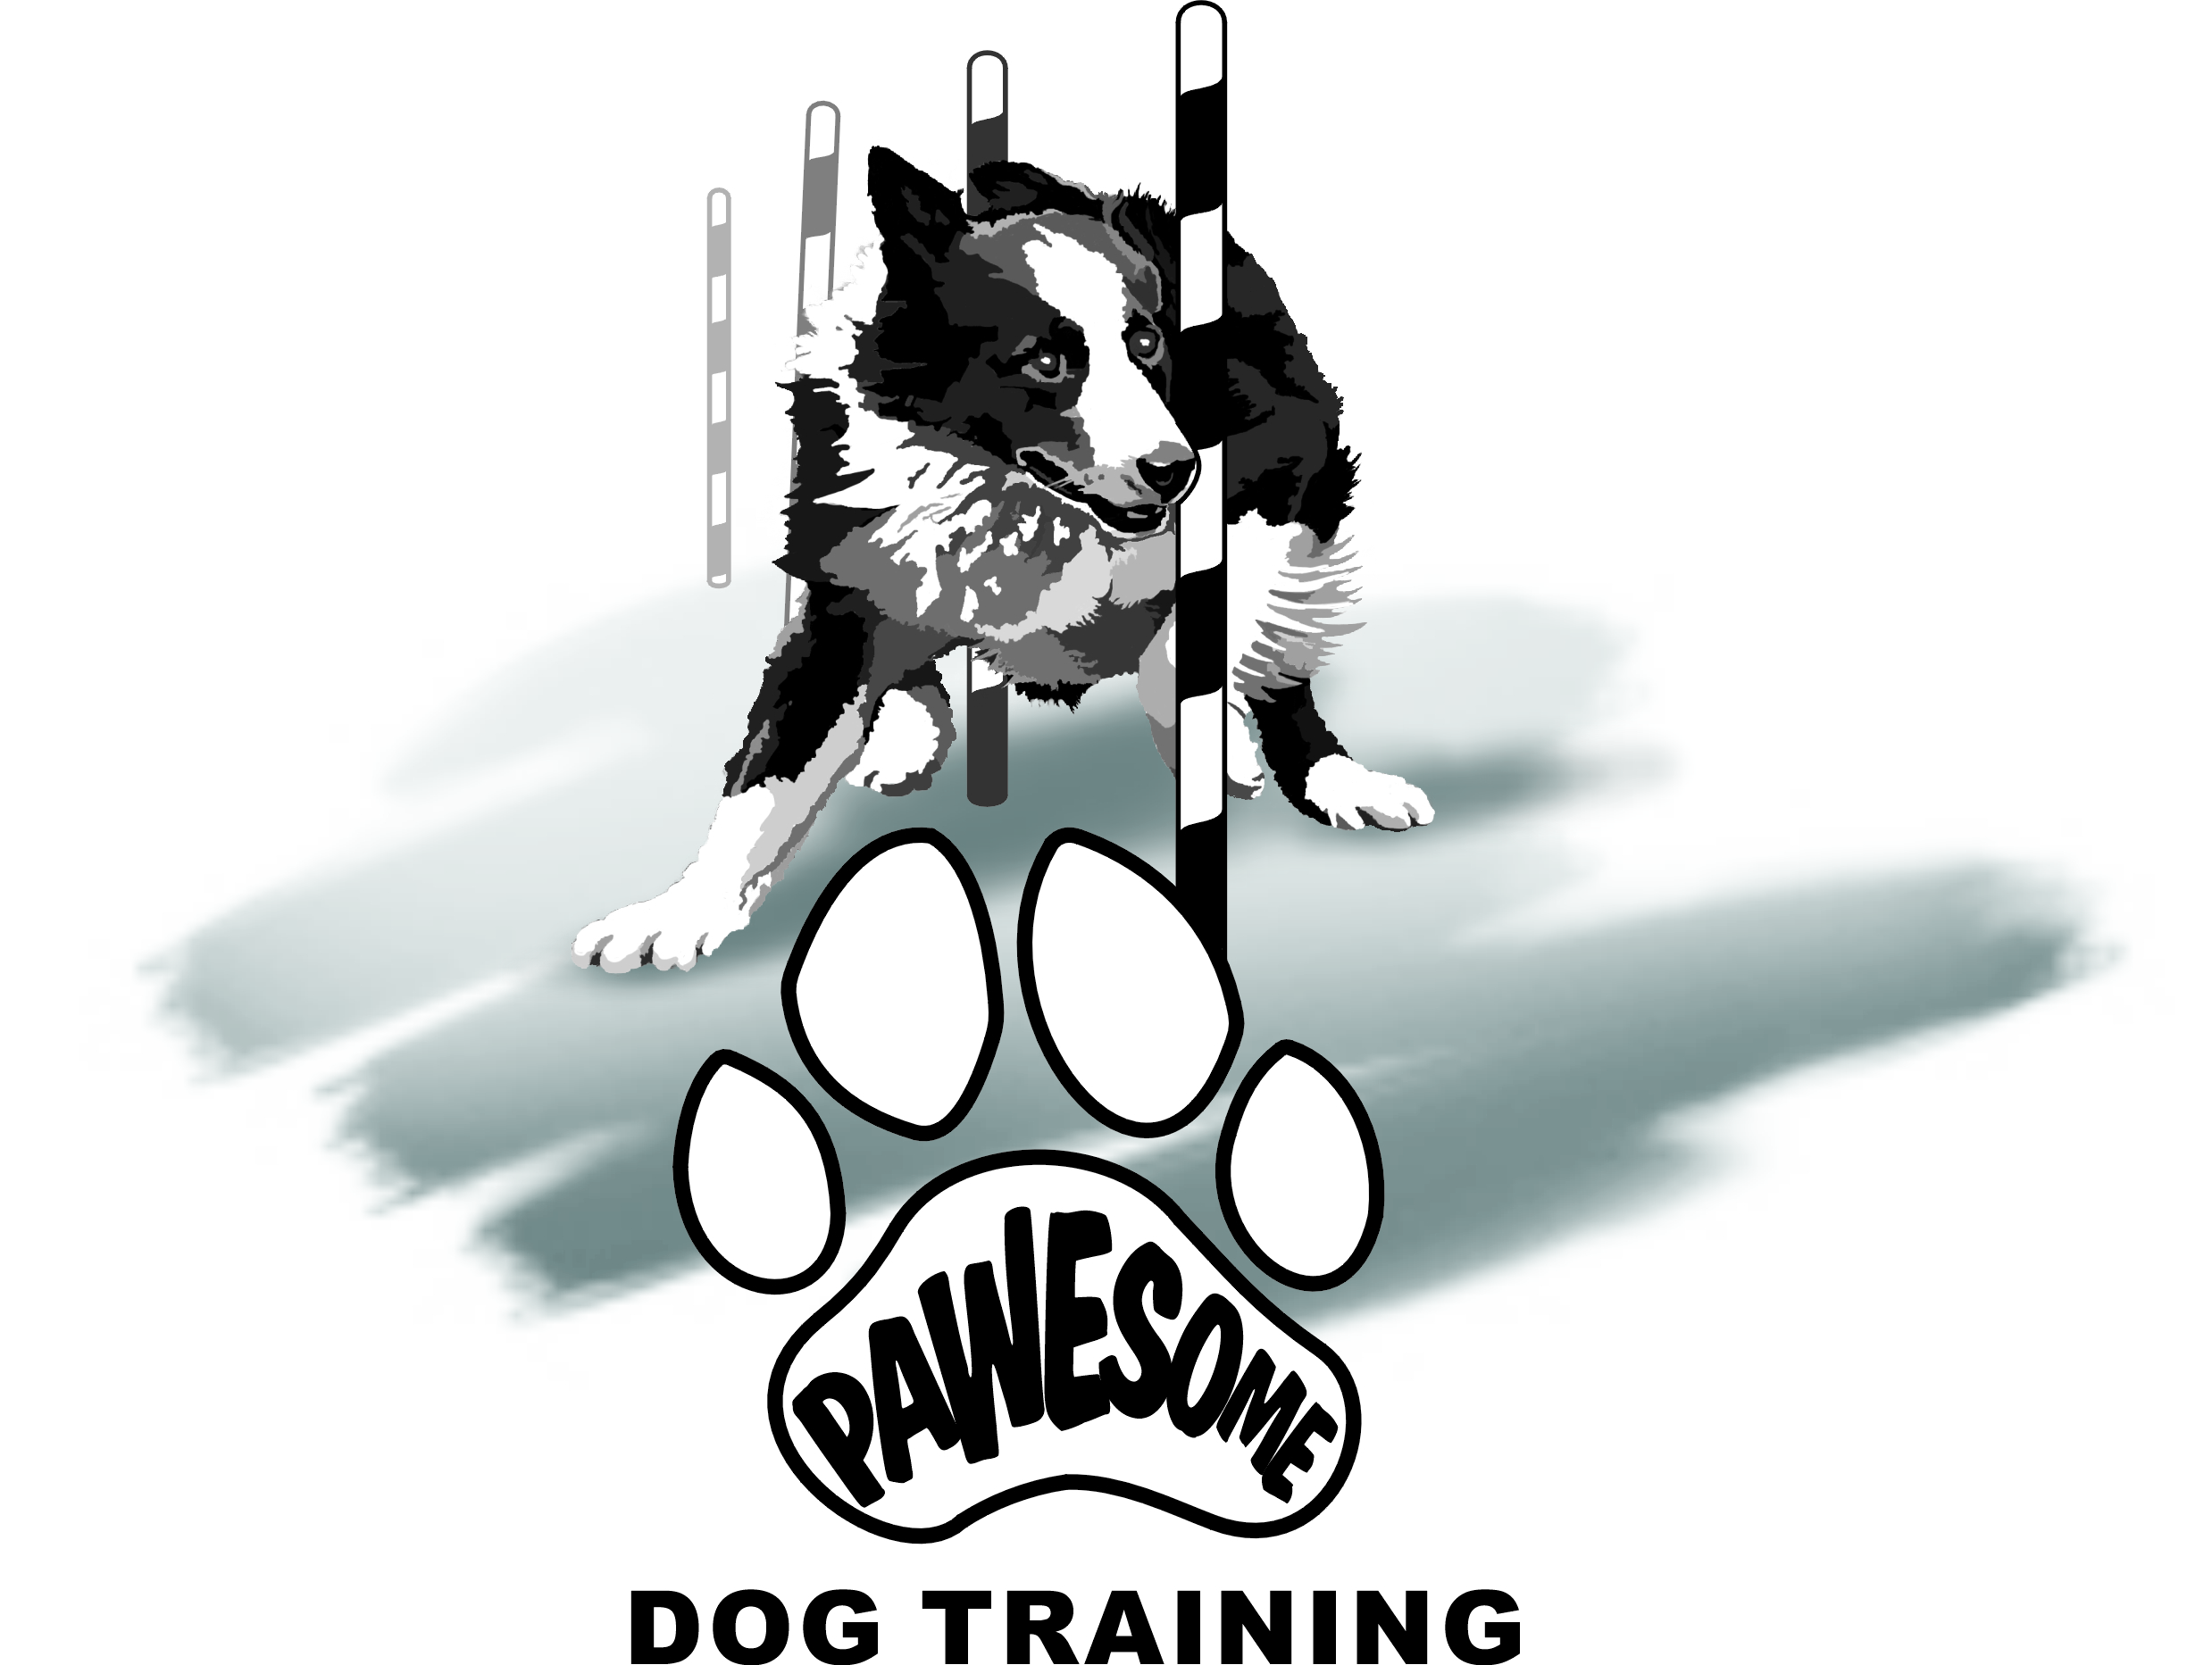 Pawesome Dog Training Cumbria